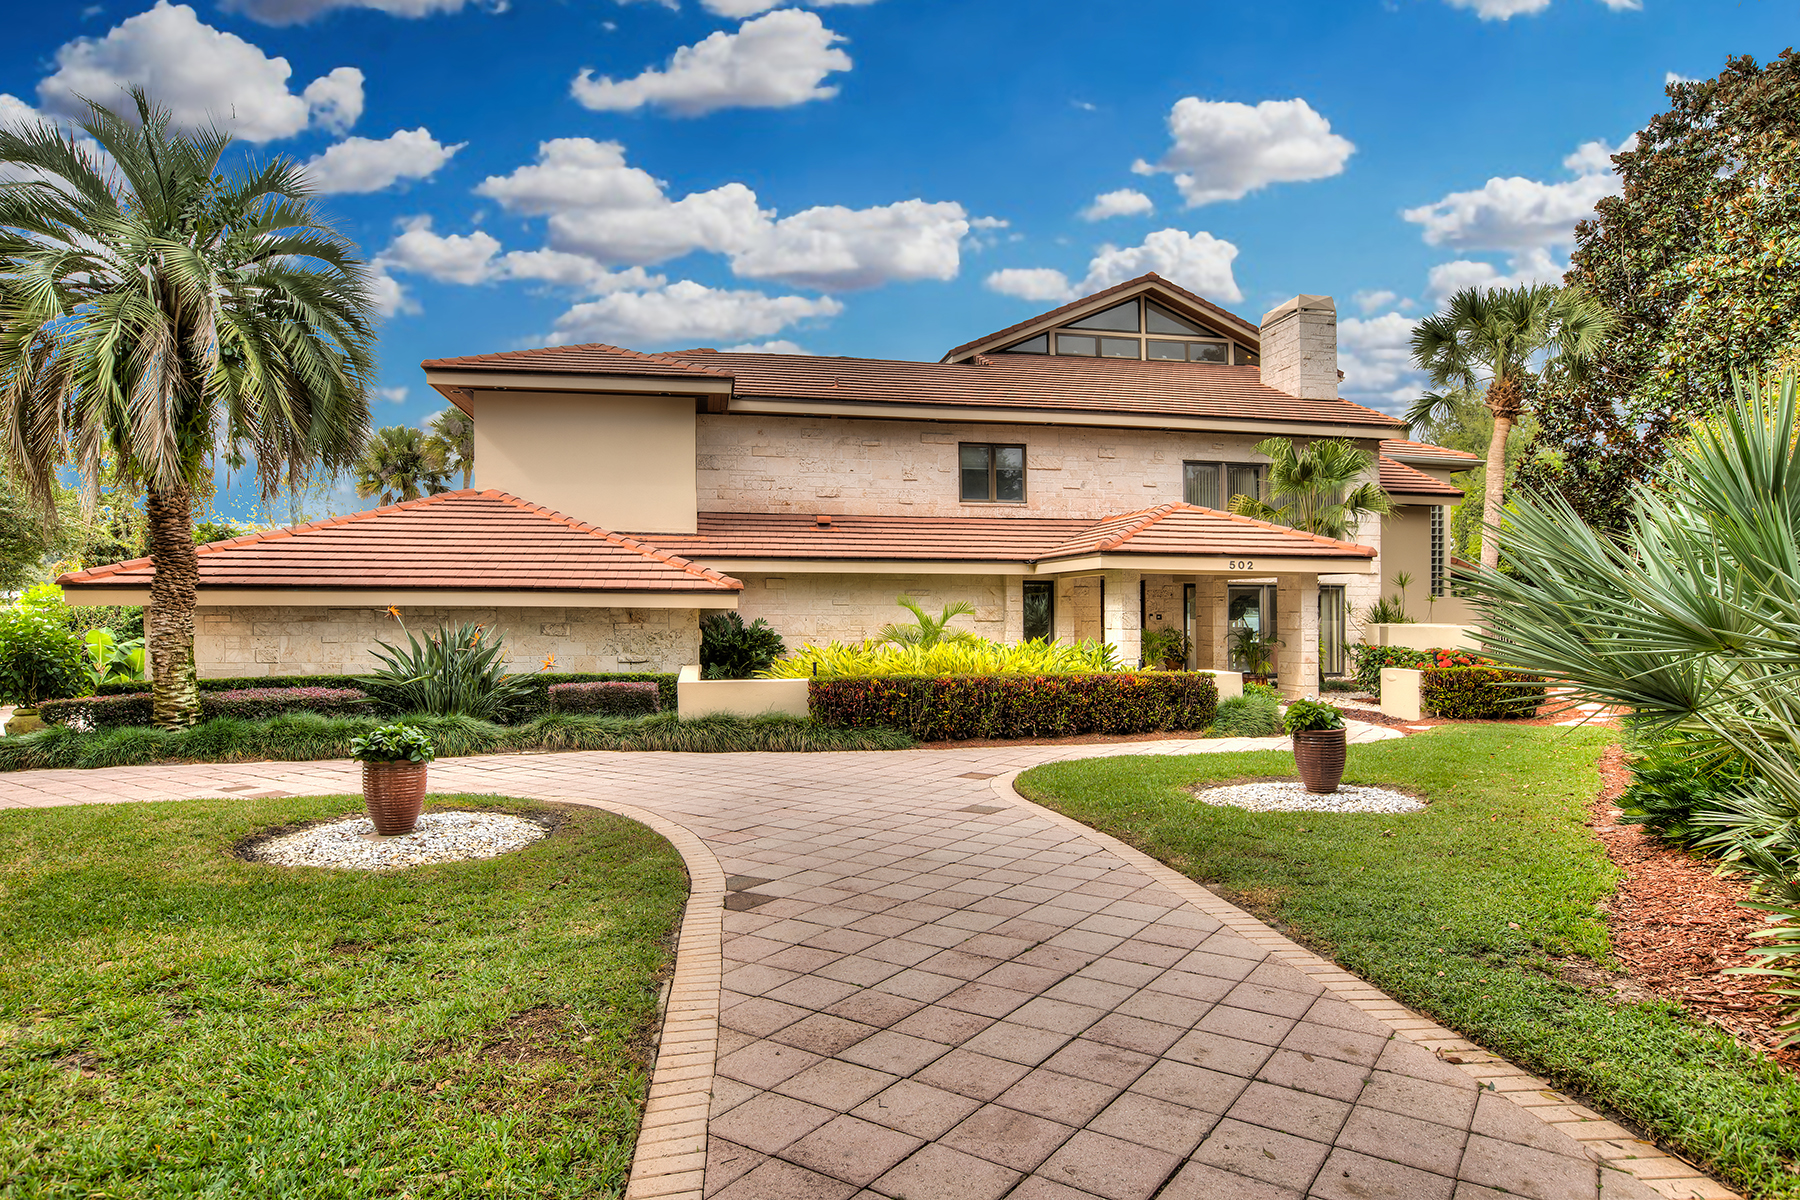 Single Family Homes for Sale at Orlando- WIndermere 502 Jennifer Ln Windermere, Florida 34786 United States